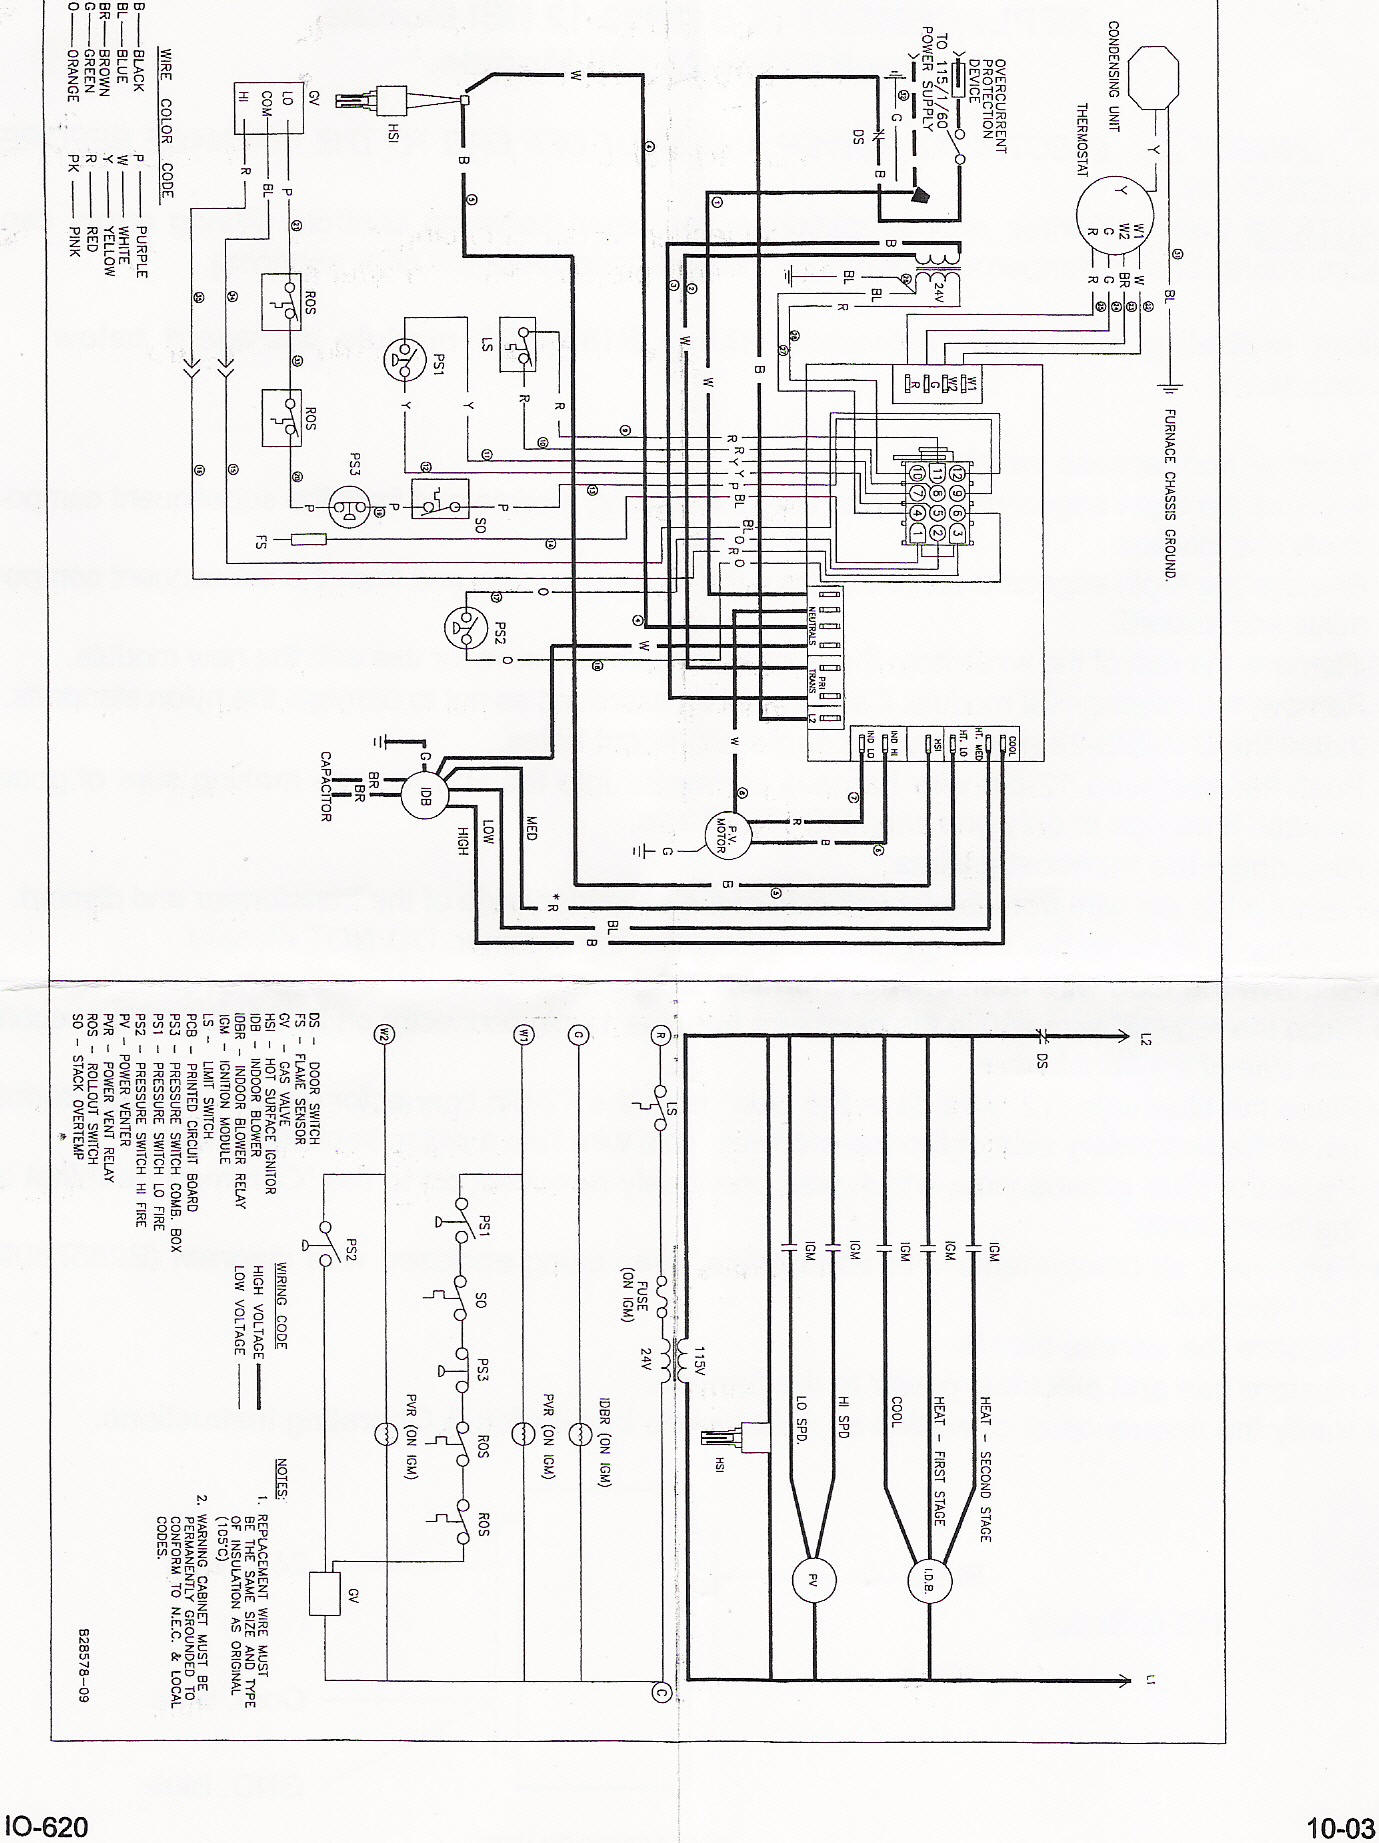 Furnace For Diagram York Wiring Ma14dn21a